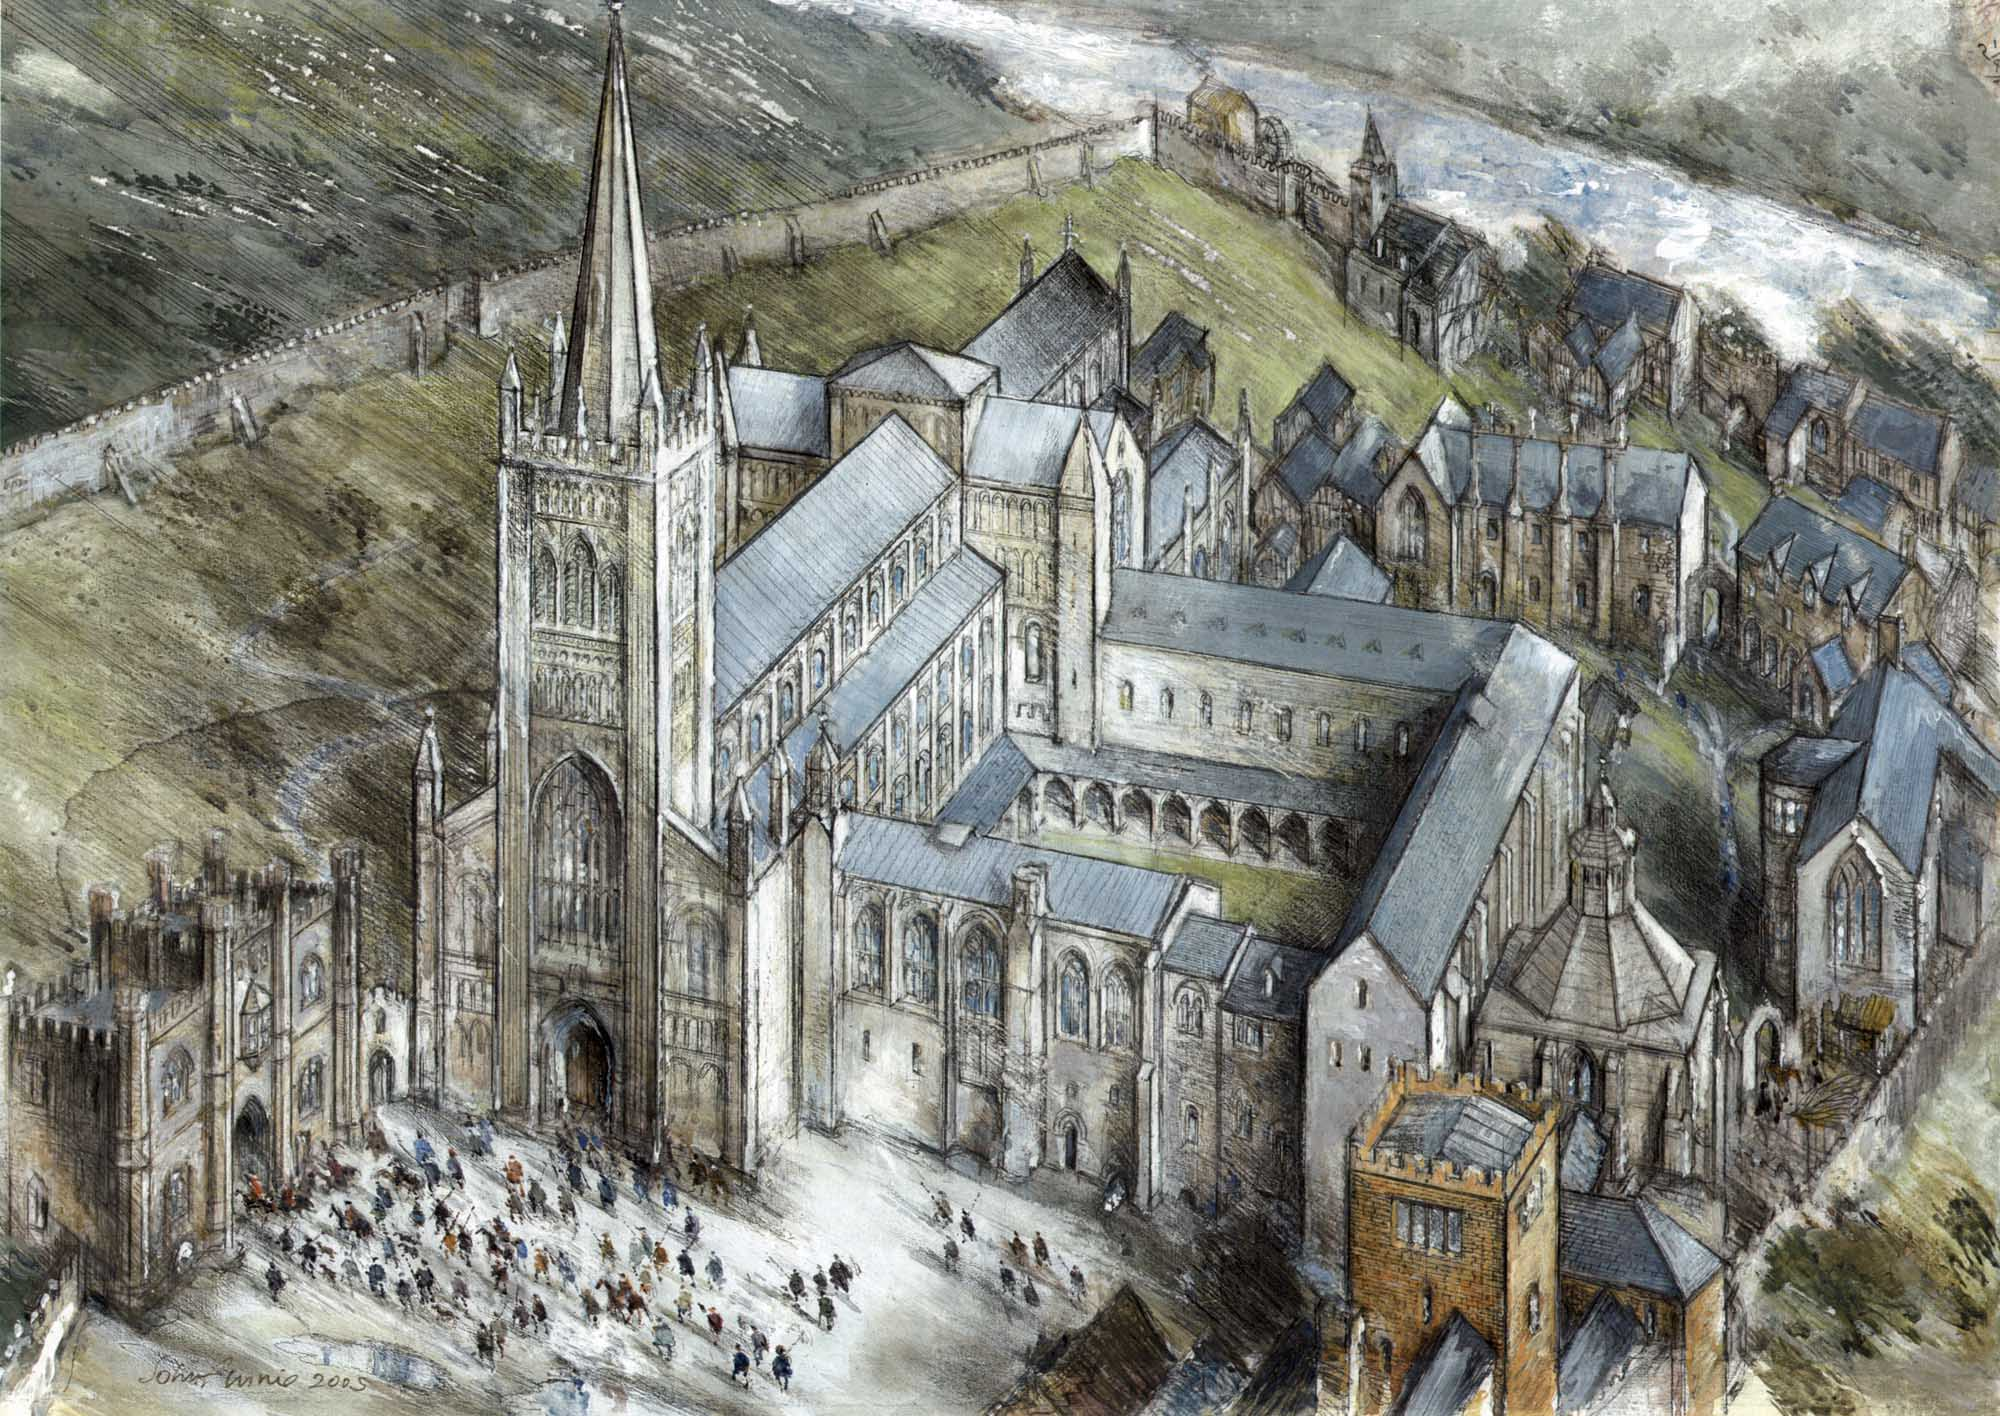 A artist impression of Leicester Abbey in its heyday - John Finnie